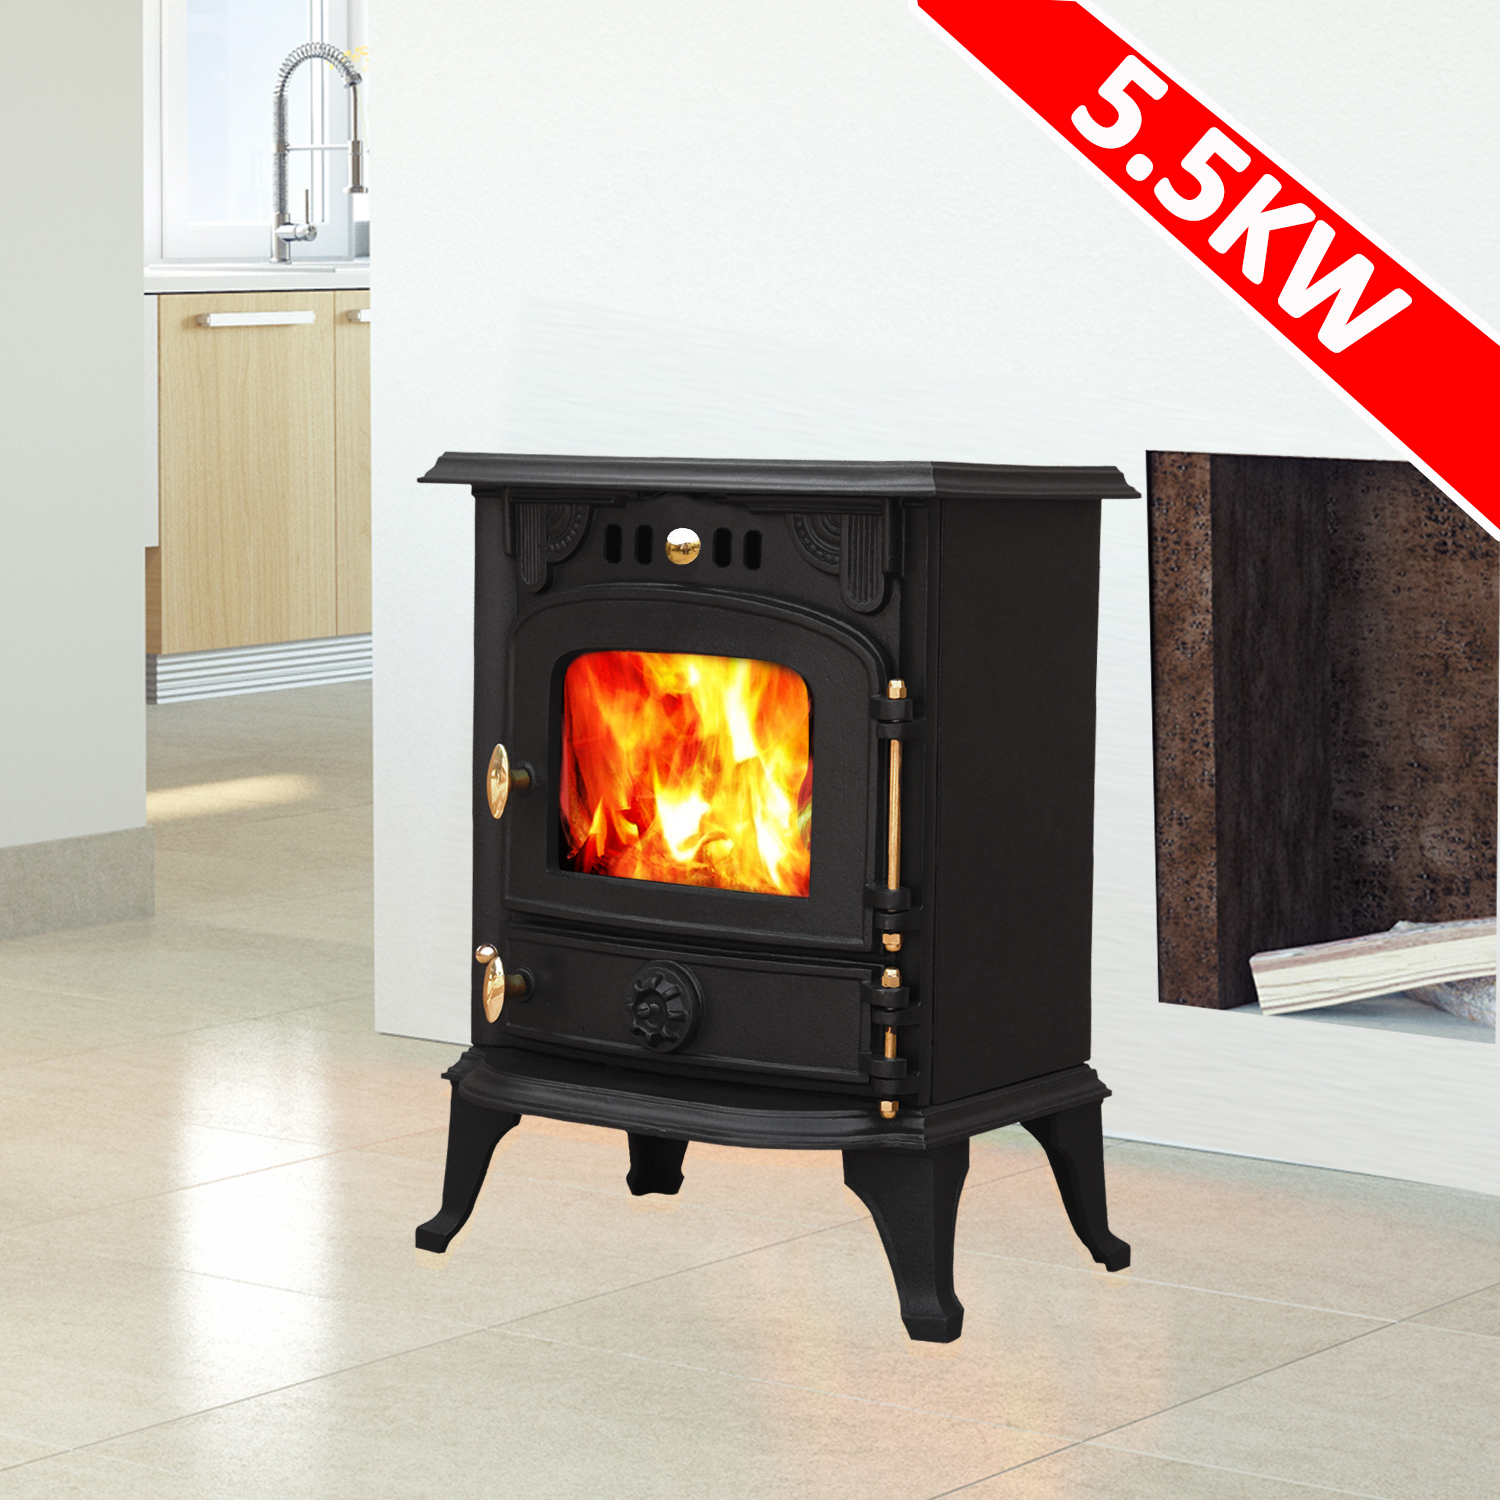 Harmston 5.5KW Multifuel Cast Iron Log Burner Wood Burning ...